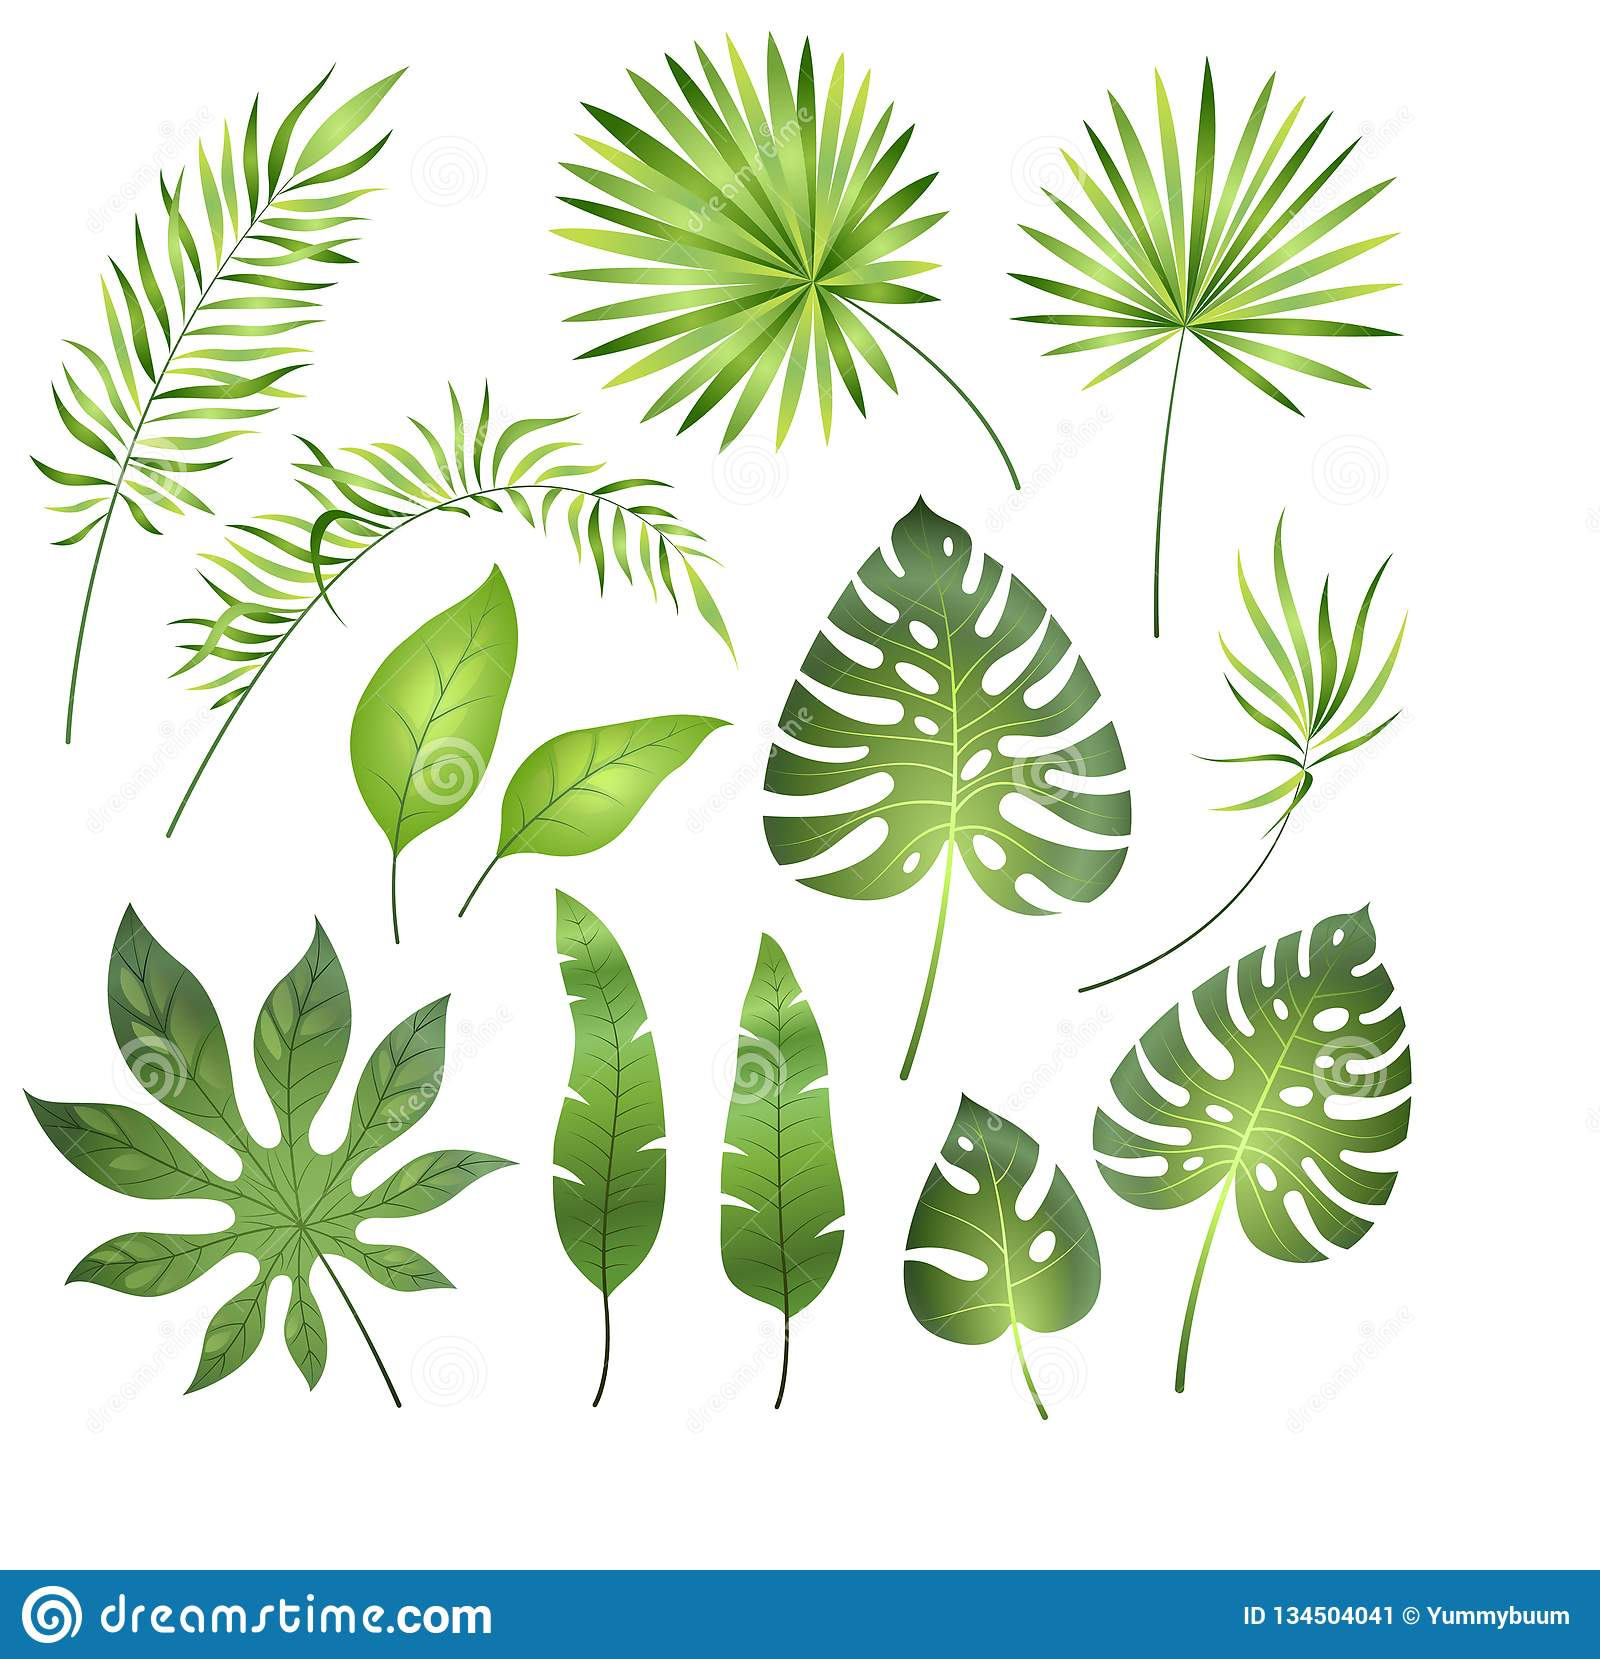 Tropical Palm Leaves Jungle Exotic Leaf Palm Royal Fern Plumeria Summer Tropical Paradise Beach Holiday Botanical Set Stock Vector Illustration Of Decorative Isolated 134504041 Great savings & free delivery / collection on many items. https www dreamstime com tropical palm leaves jungle exotic leaf royal fern plumeria summer paradise beach holiday botanical set vector illustration image134504041